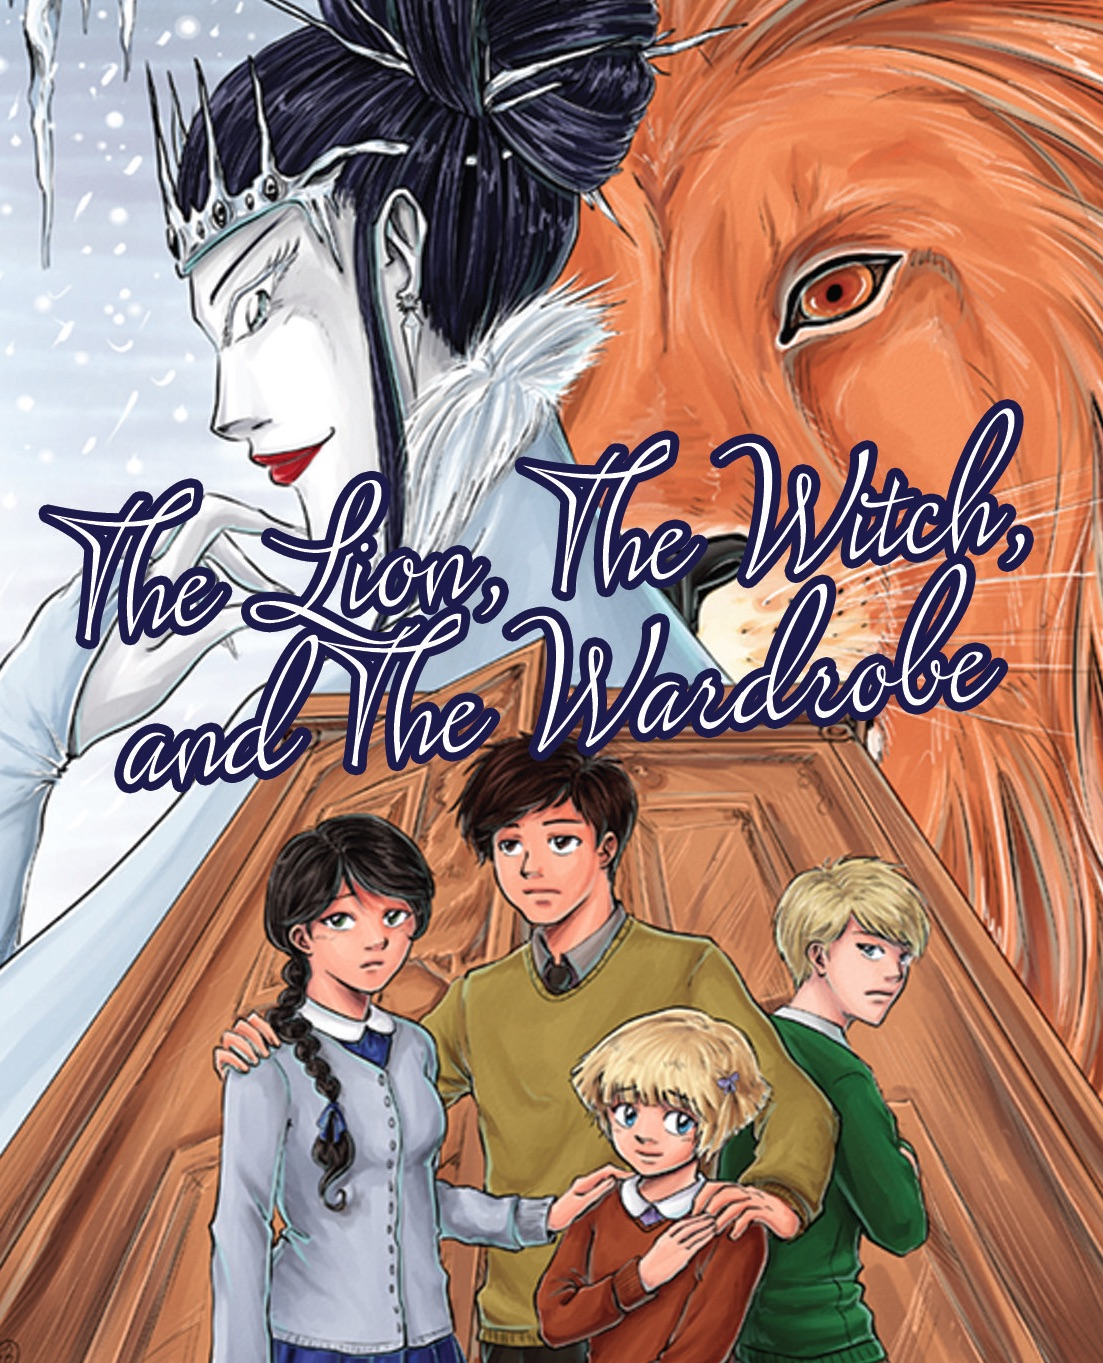 The Lion, The Witch and the Wardrobe - CBU Boardmore Theatre - Sydney